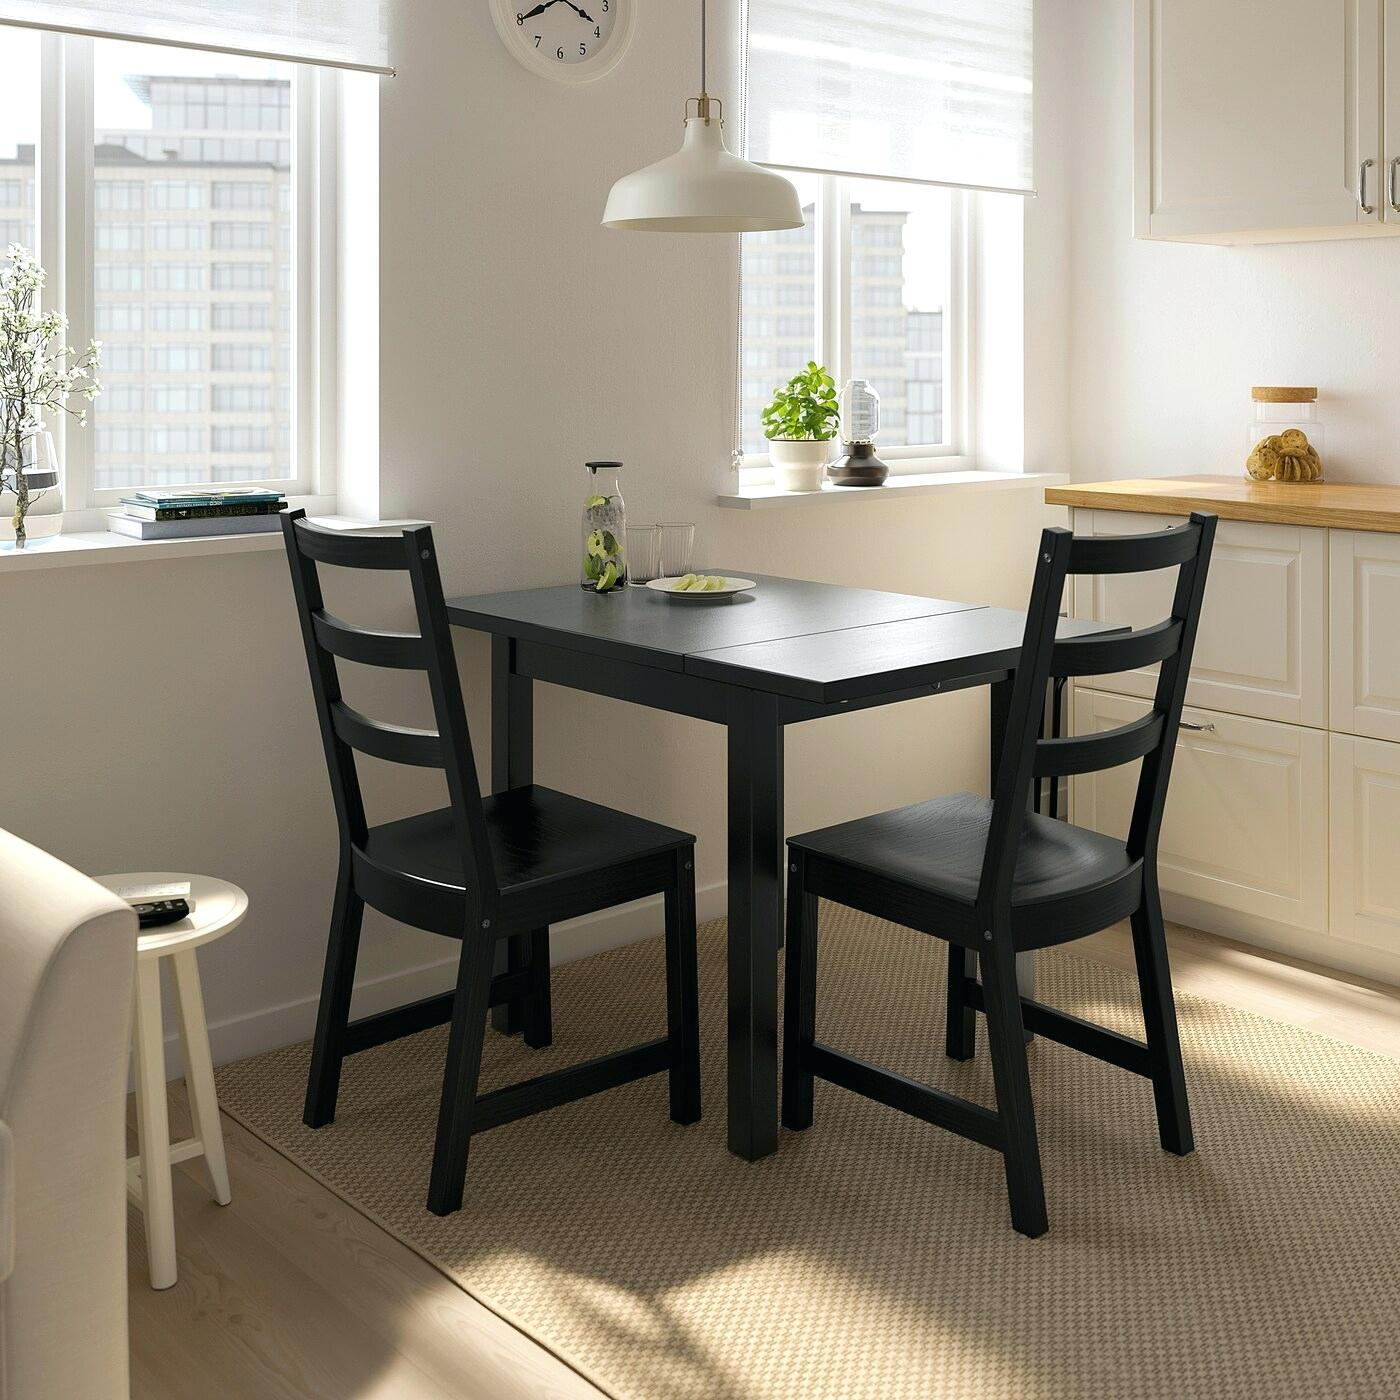 Black Kitchen Table With Leaf – Funtom (View 4 of 25)